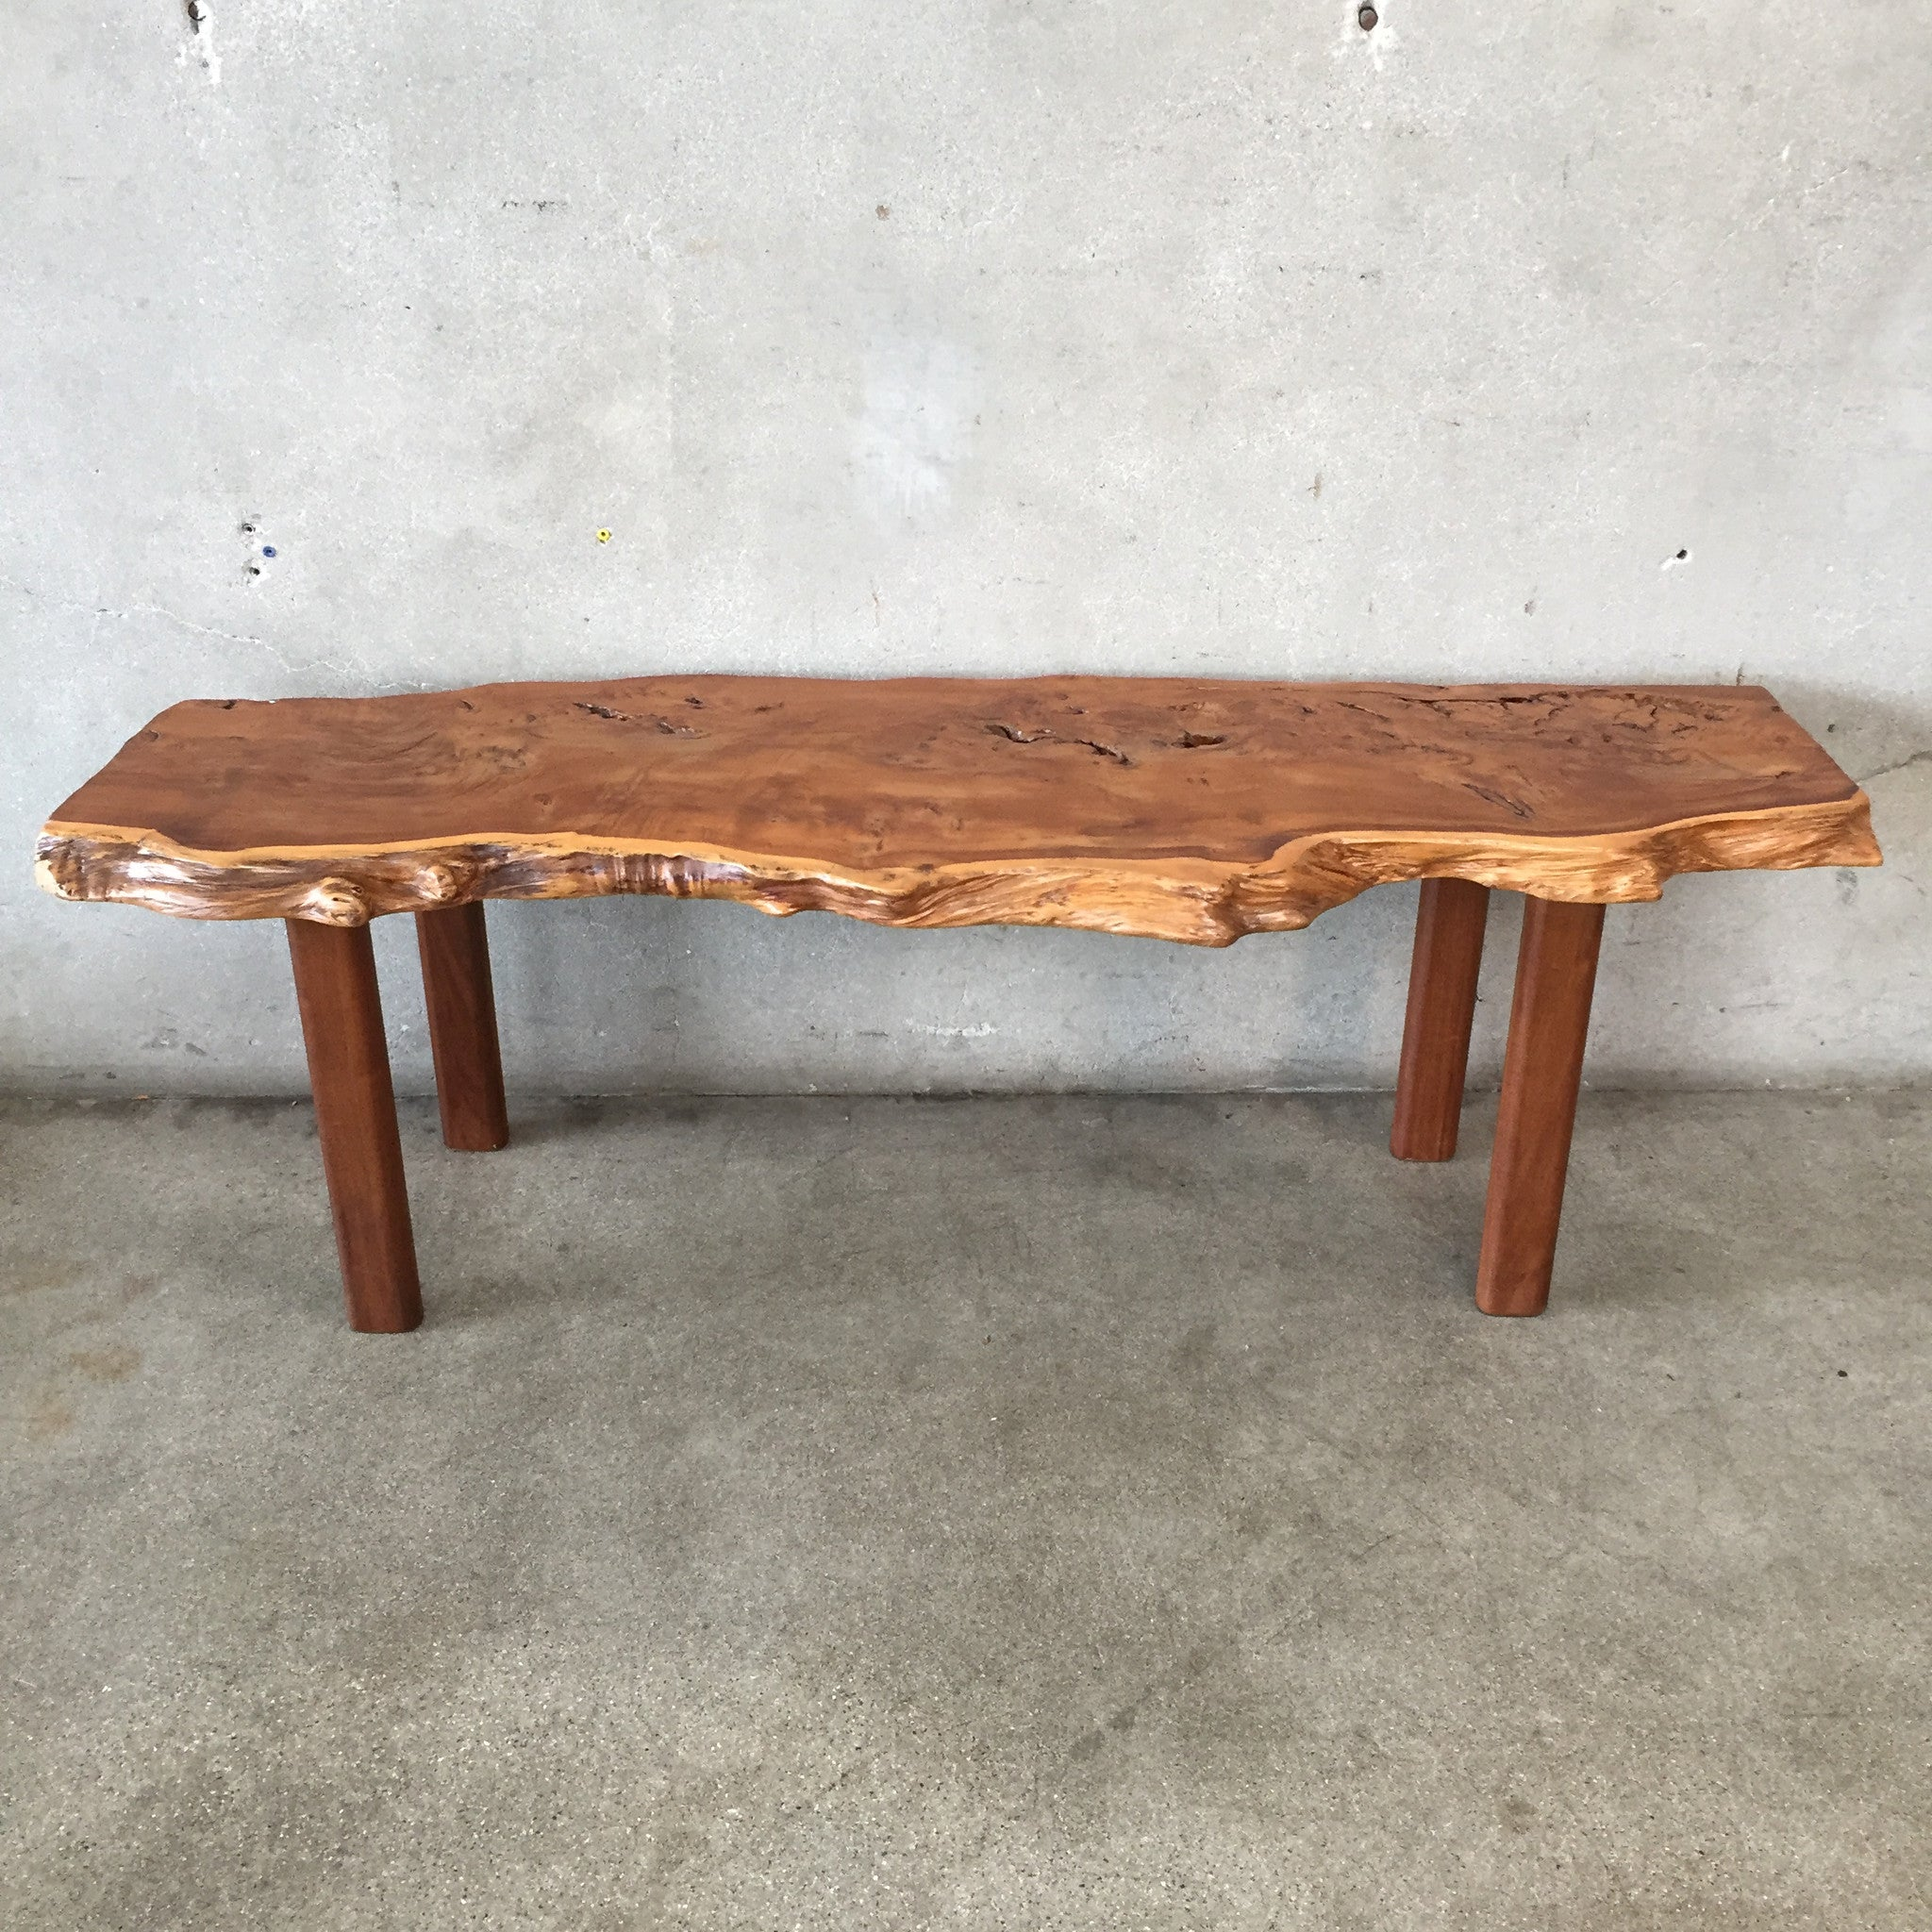 Yew Wood Live Edge Slab Coffee Table Urbanamericana: live wood coffee table